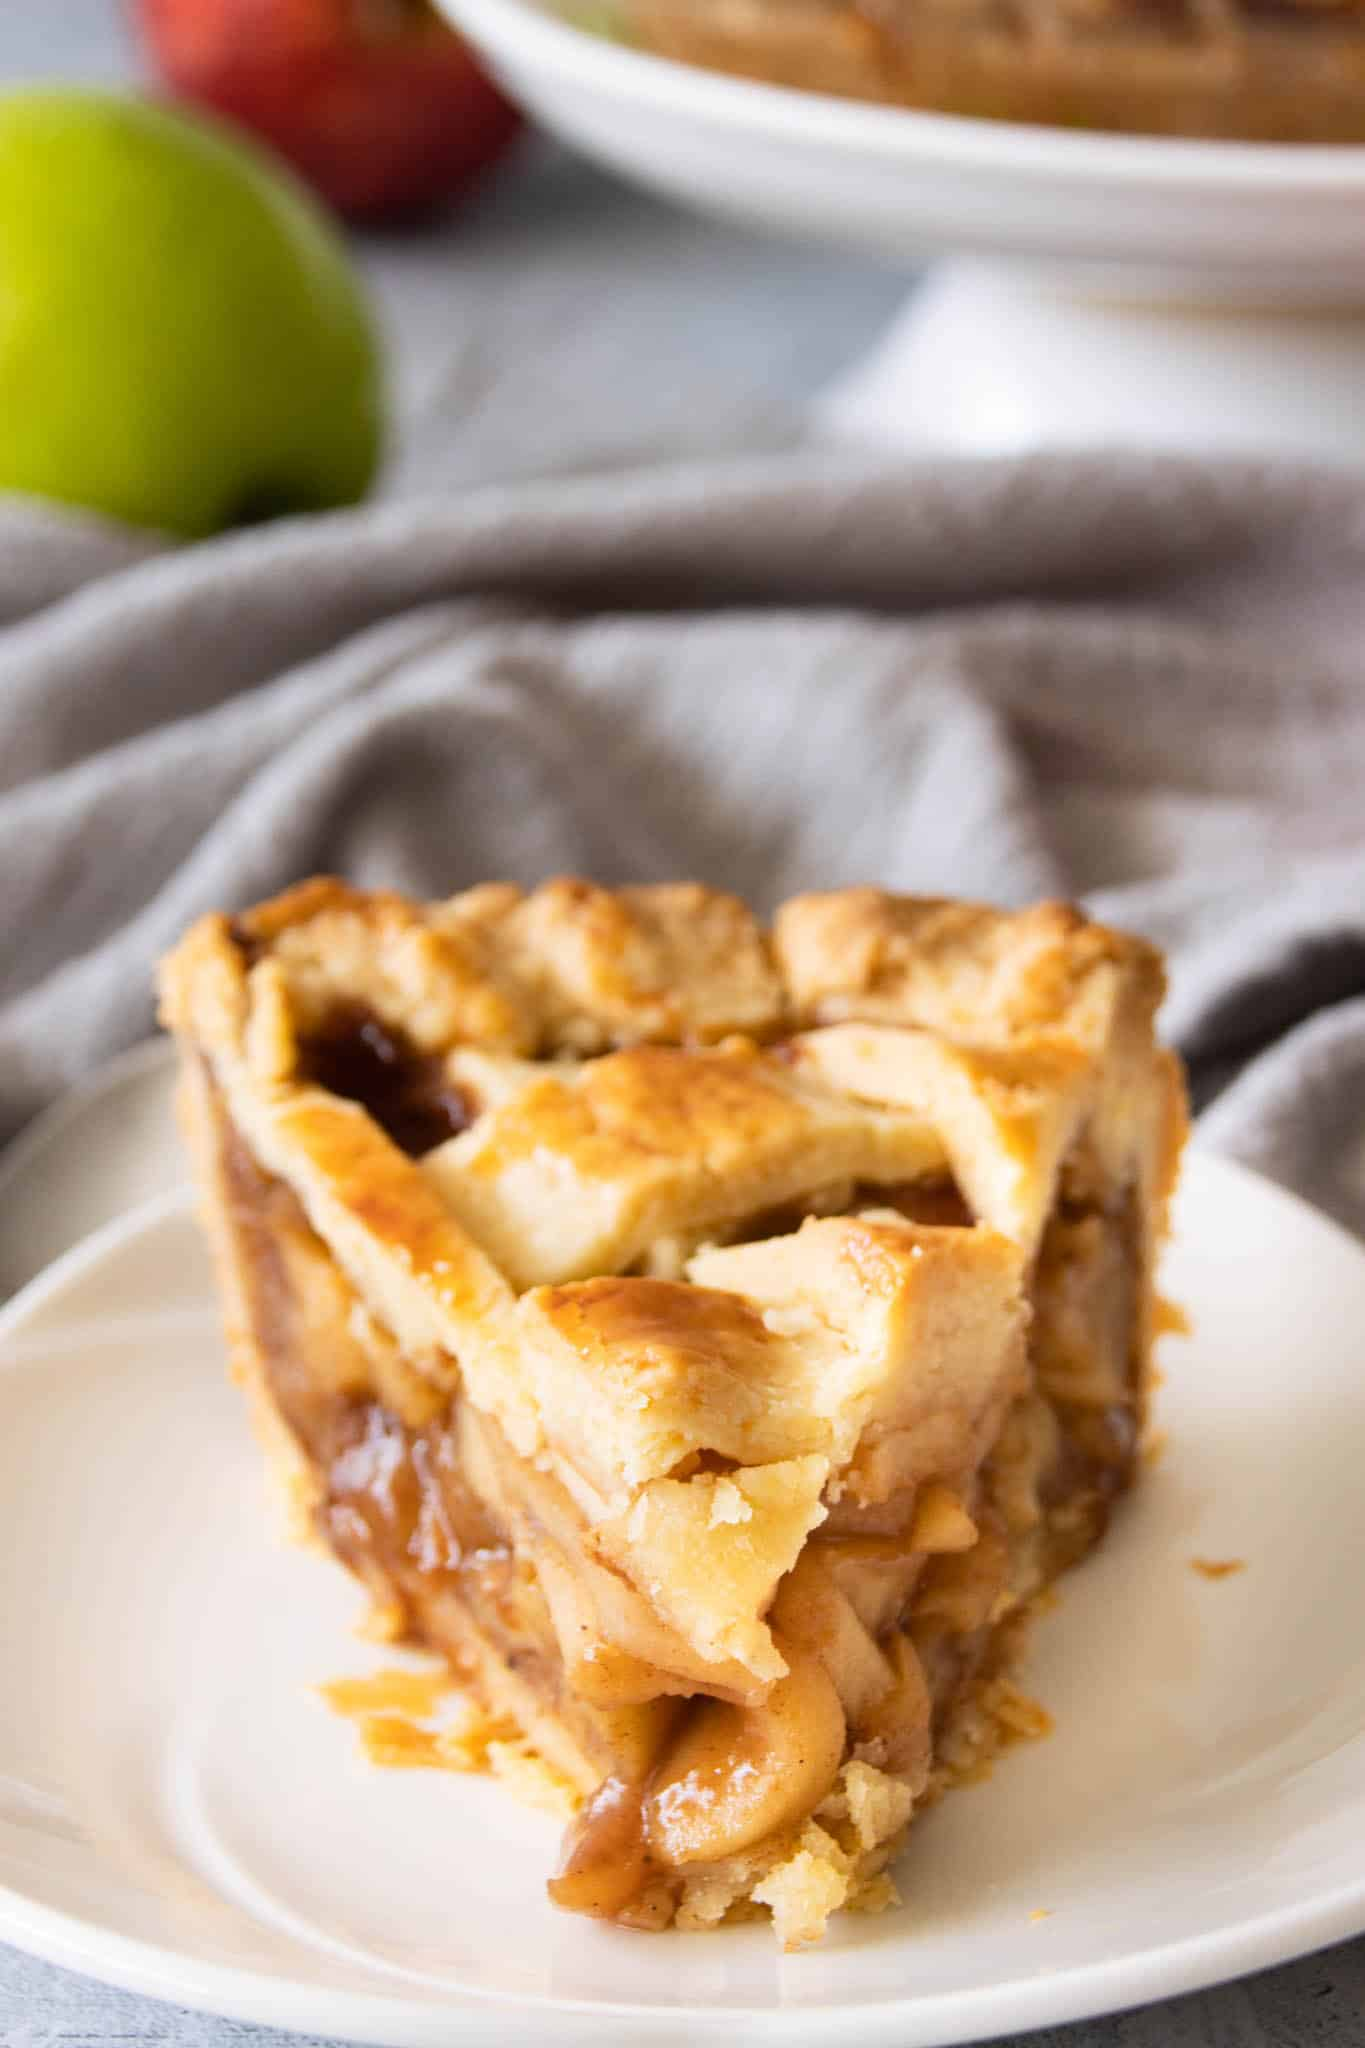 A slice of homemade apple pie with caramelised apple filling